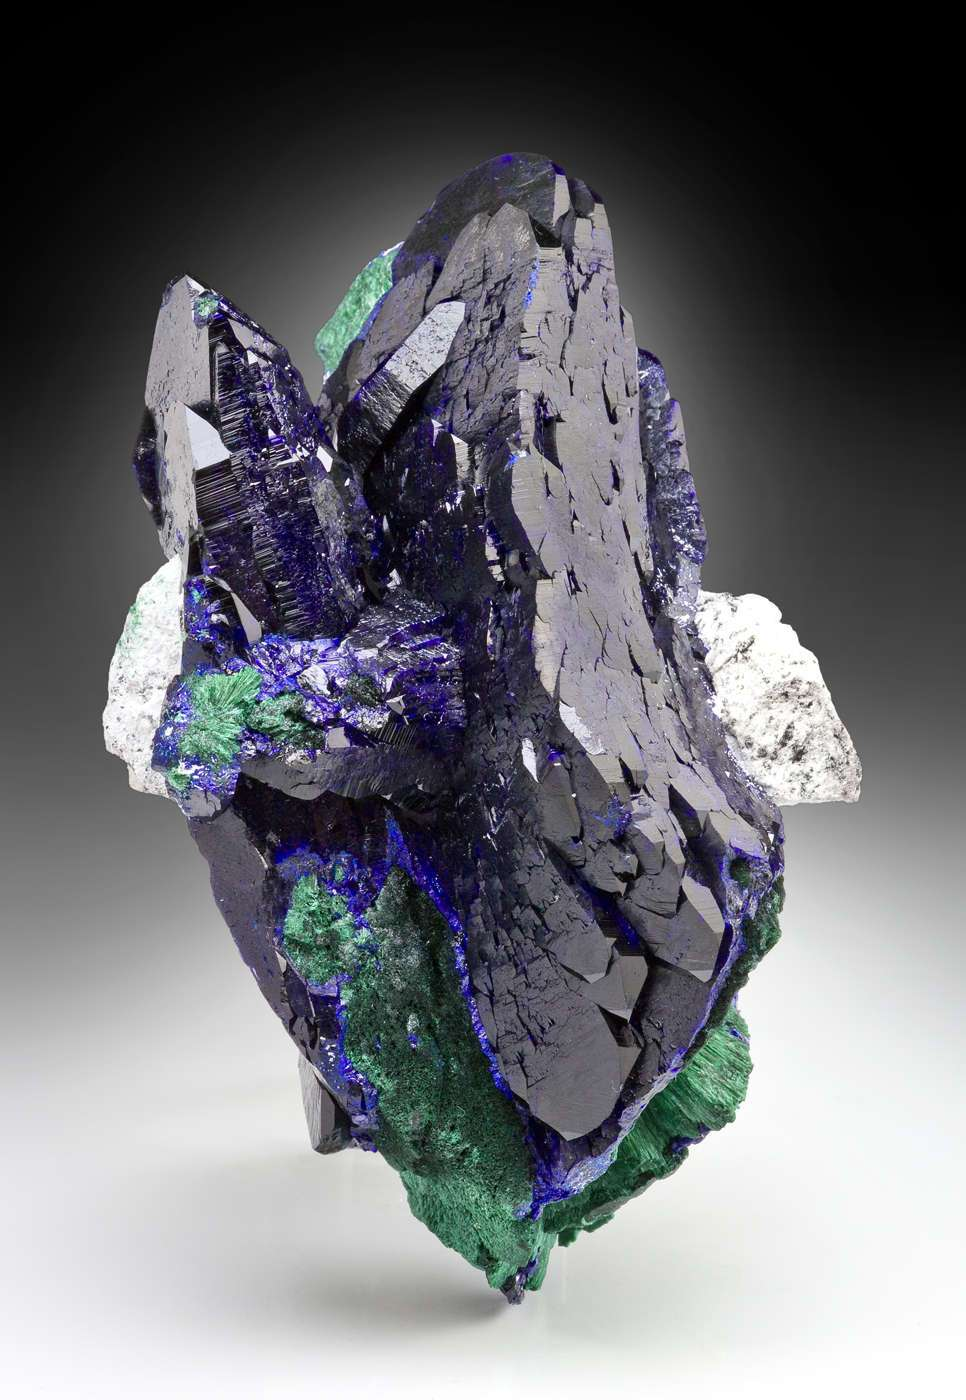 Milpillas wonder locality century It producing briefly azurite quality